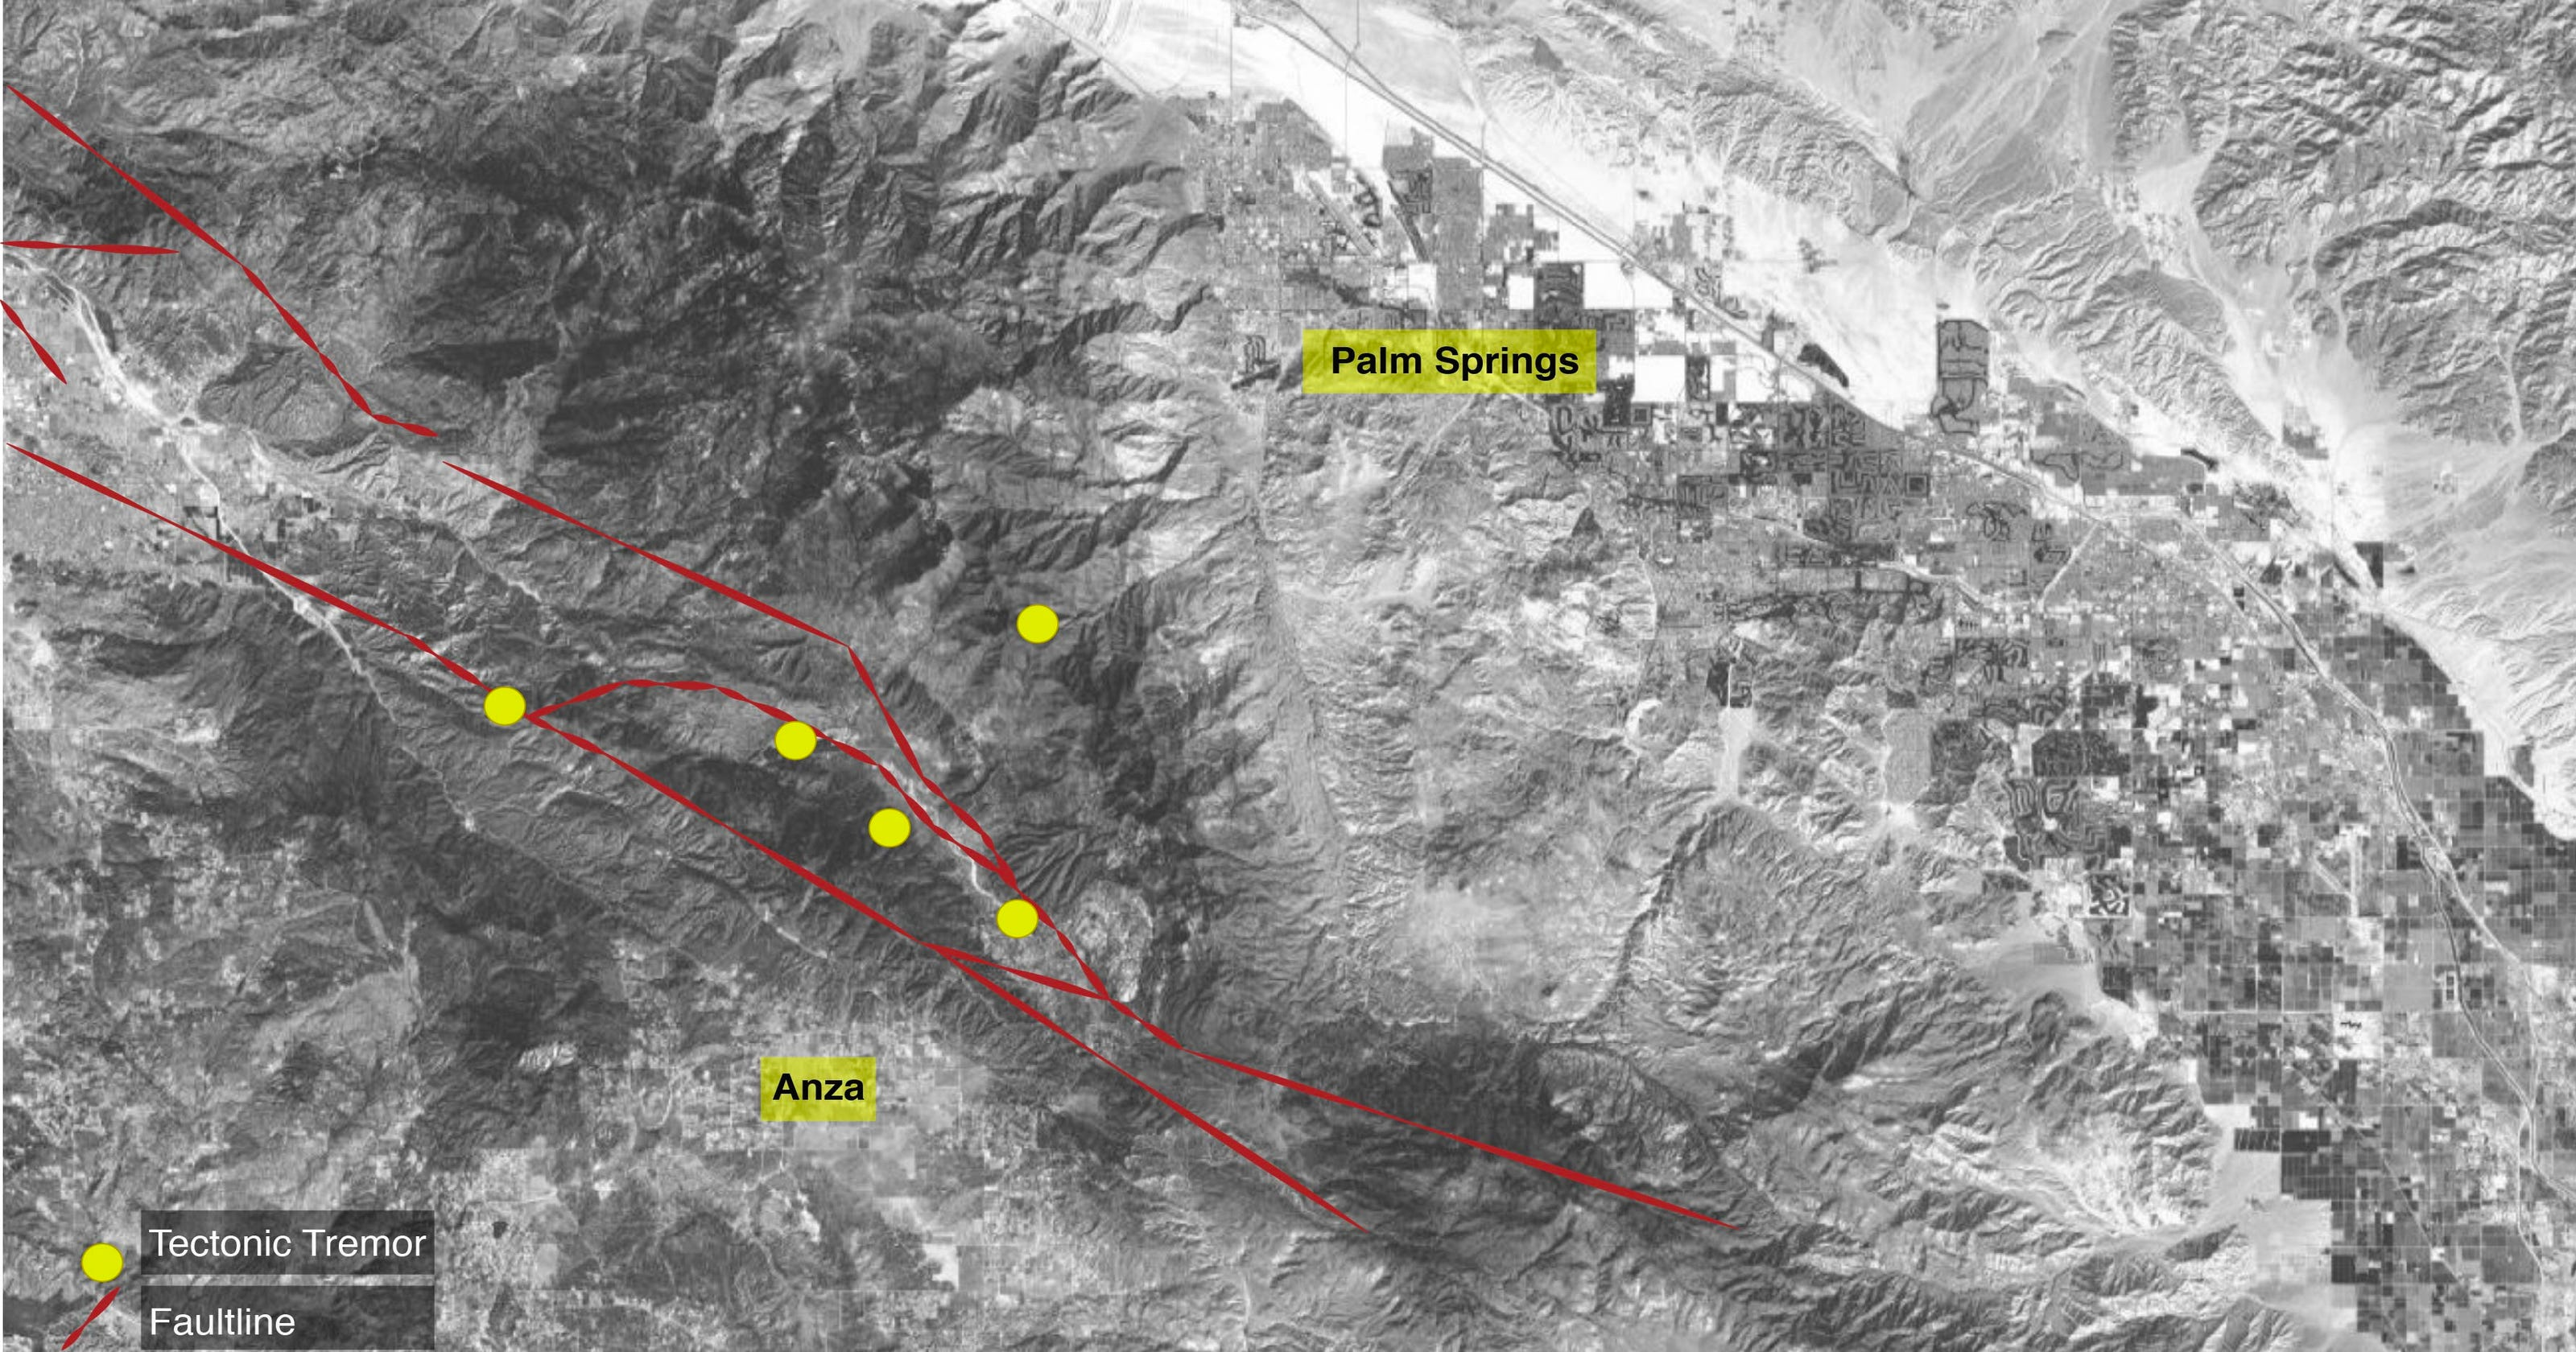 Research shows quake risk on San Jacinto fault on simi valley on map, pico rivera on map, yuba city on map, ontario on map, mecca on map, cherokee on map, midland on map, whittier on map, oxnard on map, pomona on map, south gate on map, mission viejo on map, humboldt river on map, carmel by the sea on map, yorba linda on map, berkeley on map, sierra madre on map, tulsa on map, lake forest on map,